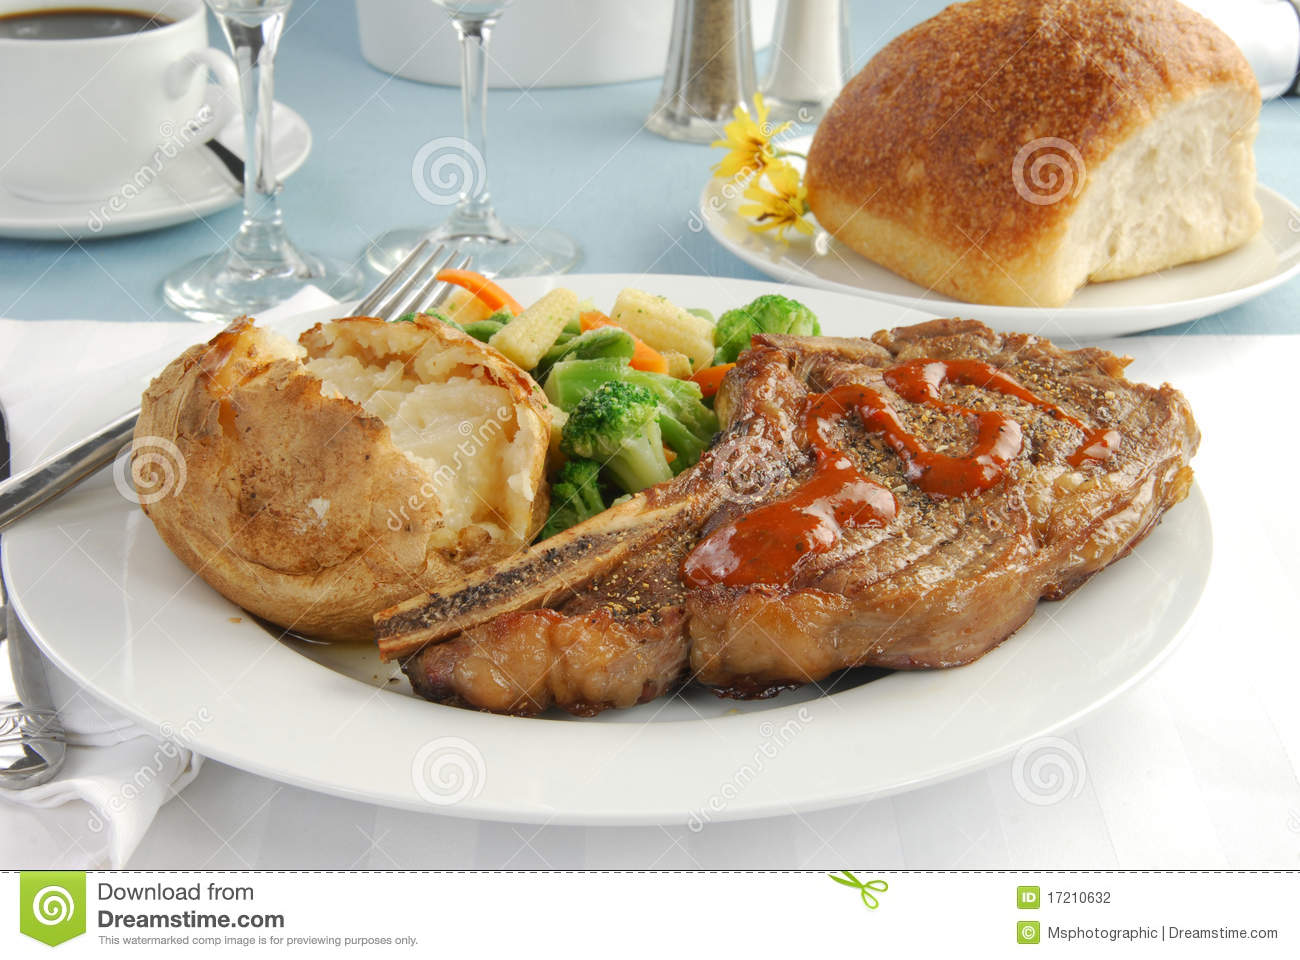 Gourmet steak dinner stock photo. Image of dinner, bread ...